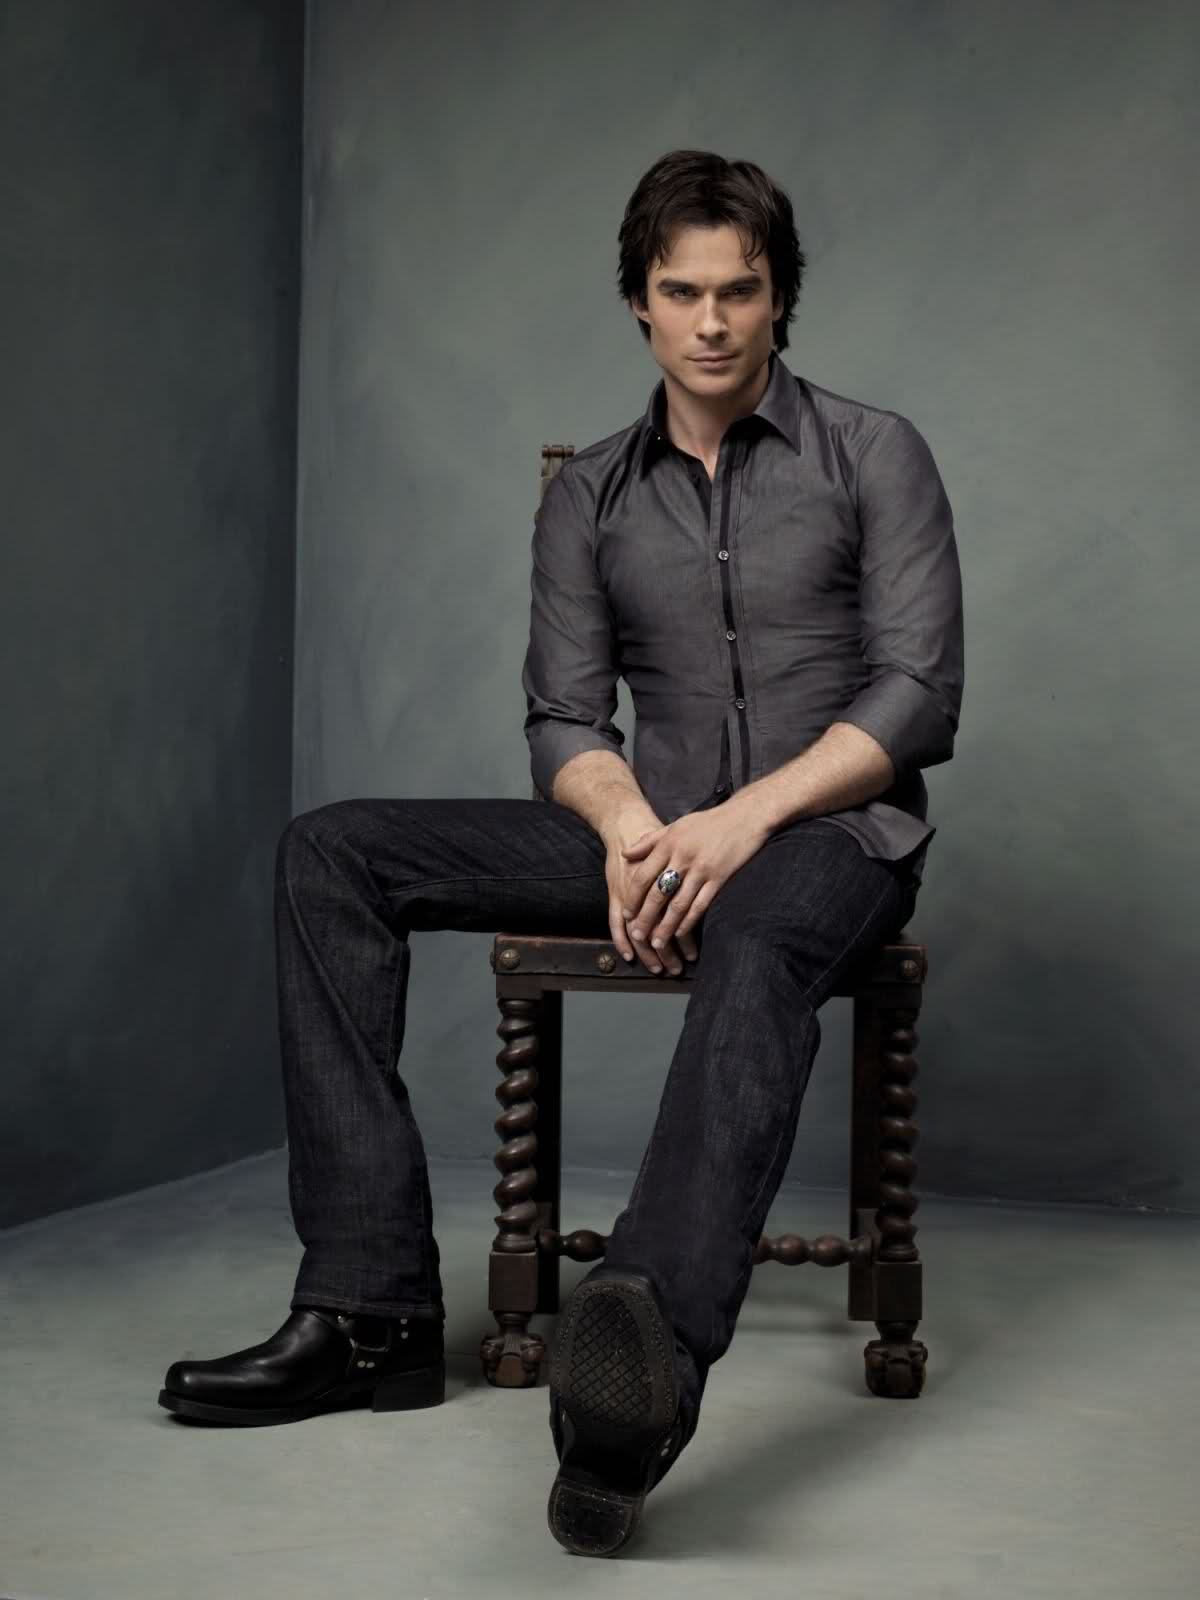 ian somerhalder photoshoot 2017 - photo #40